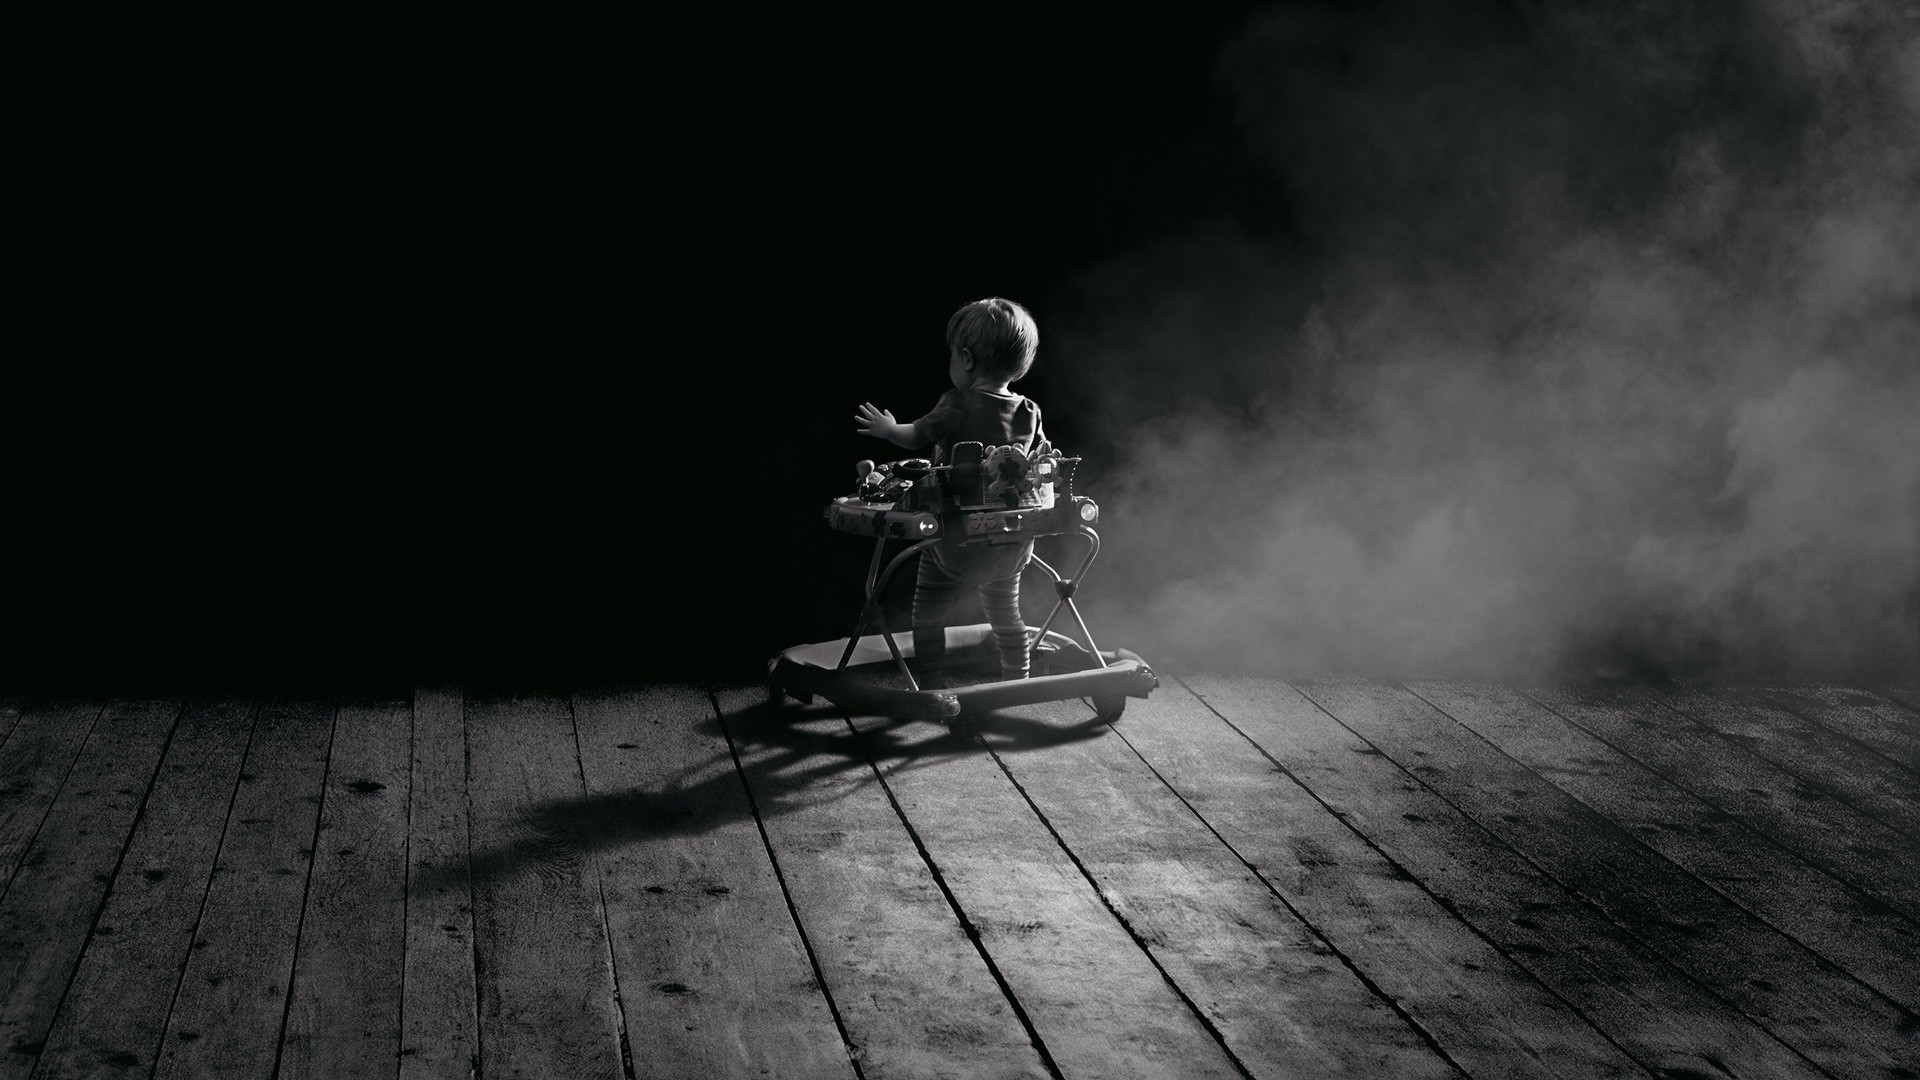 Creepy Hd Wallpaper: Scary Wallpapers HD 1920x1080 (60+ Images